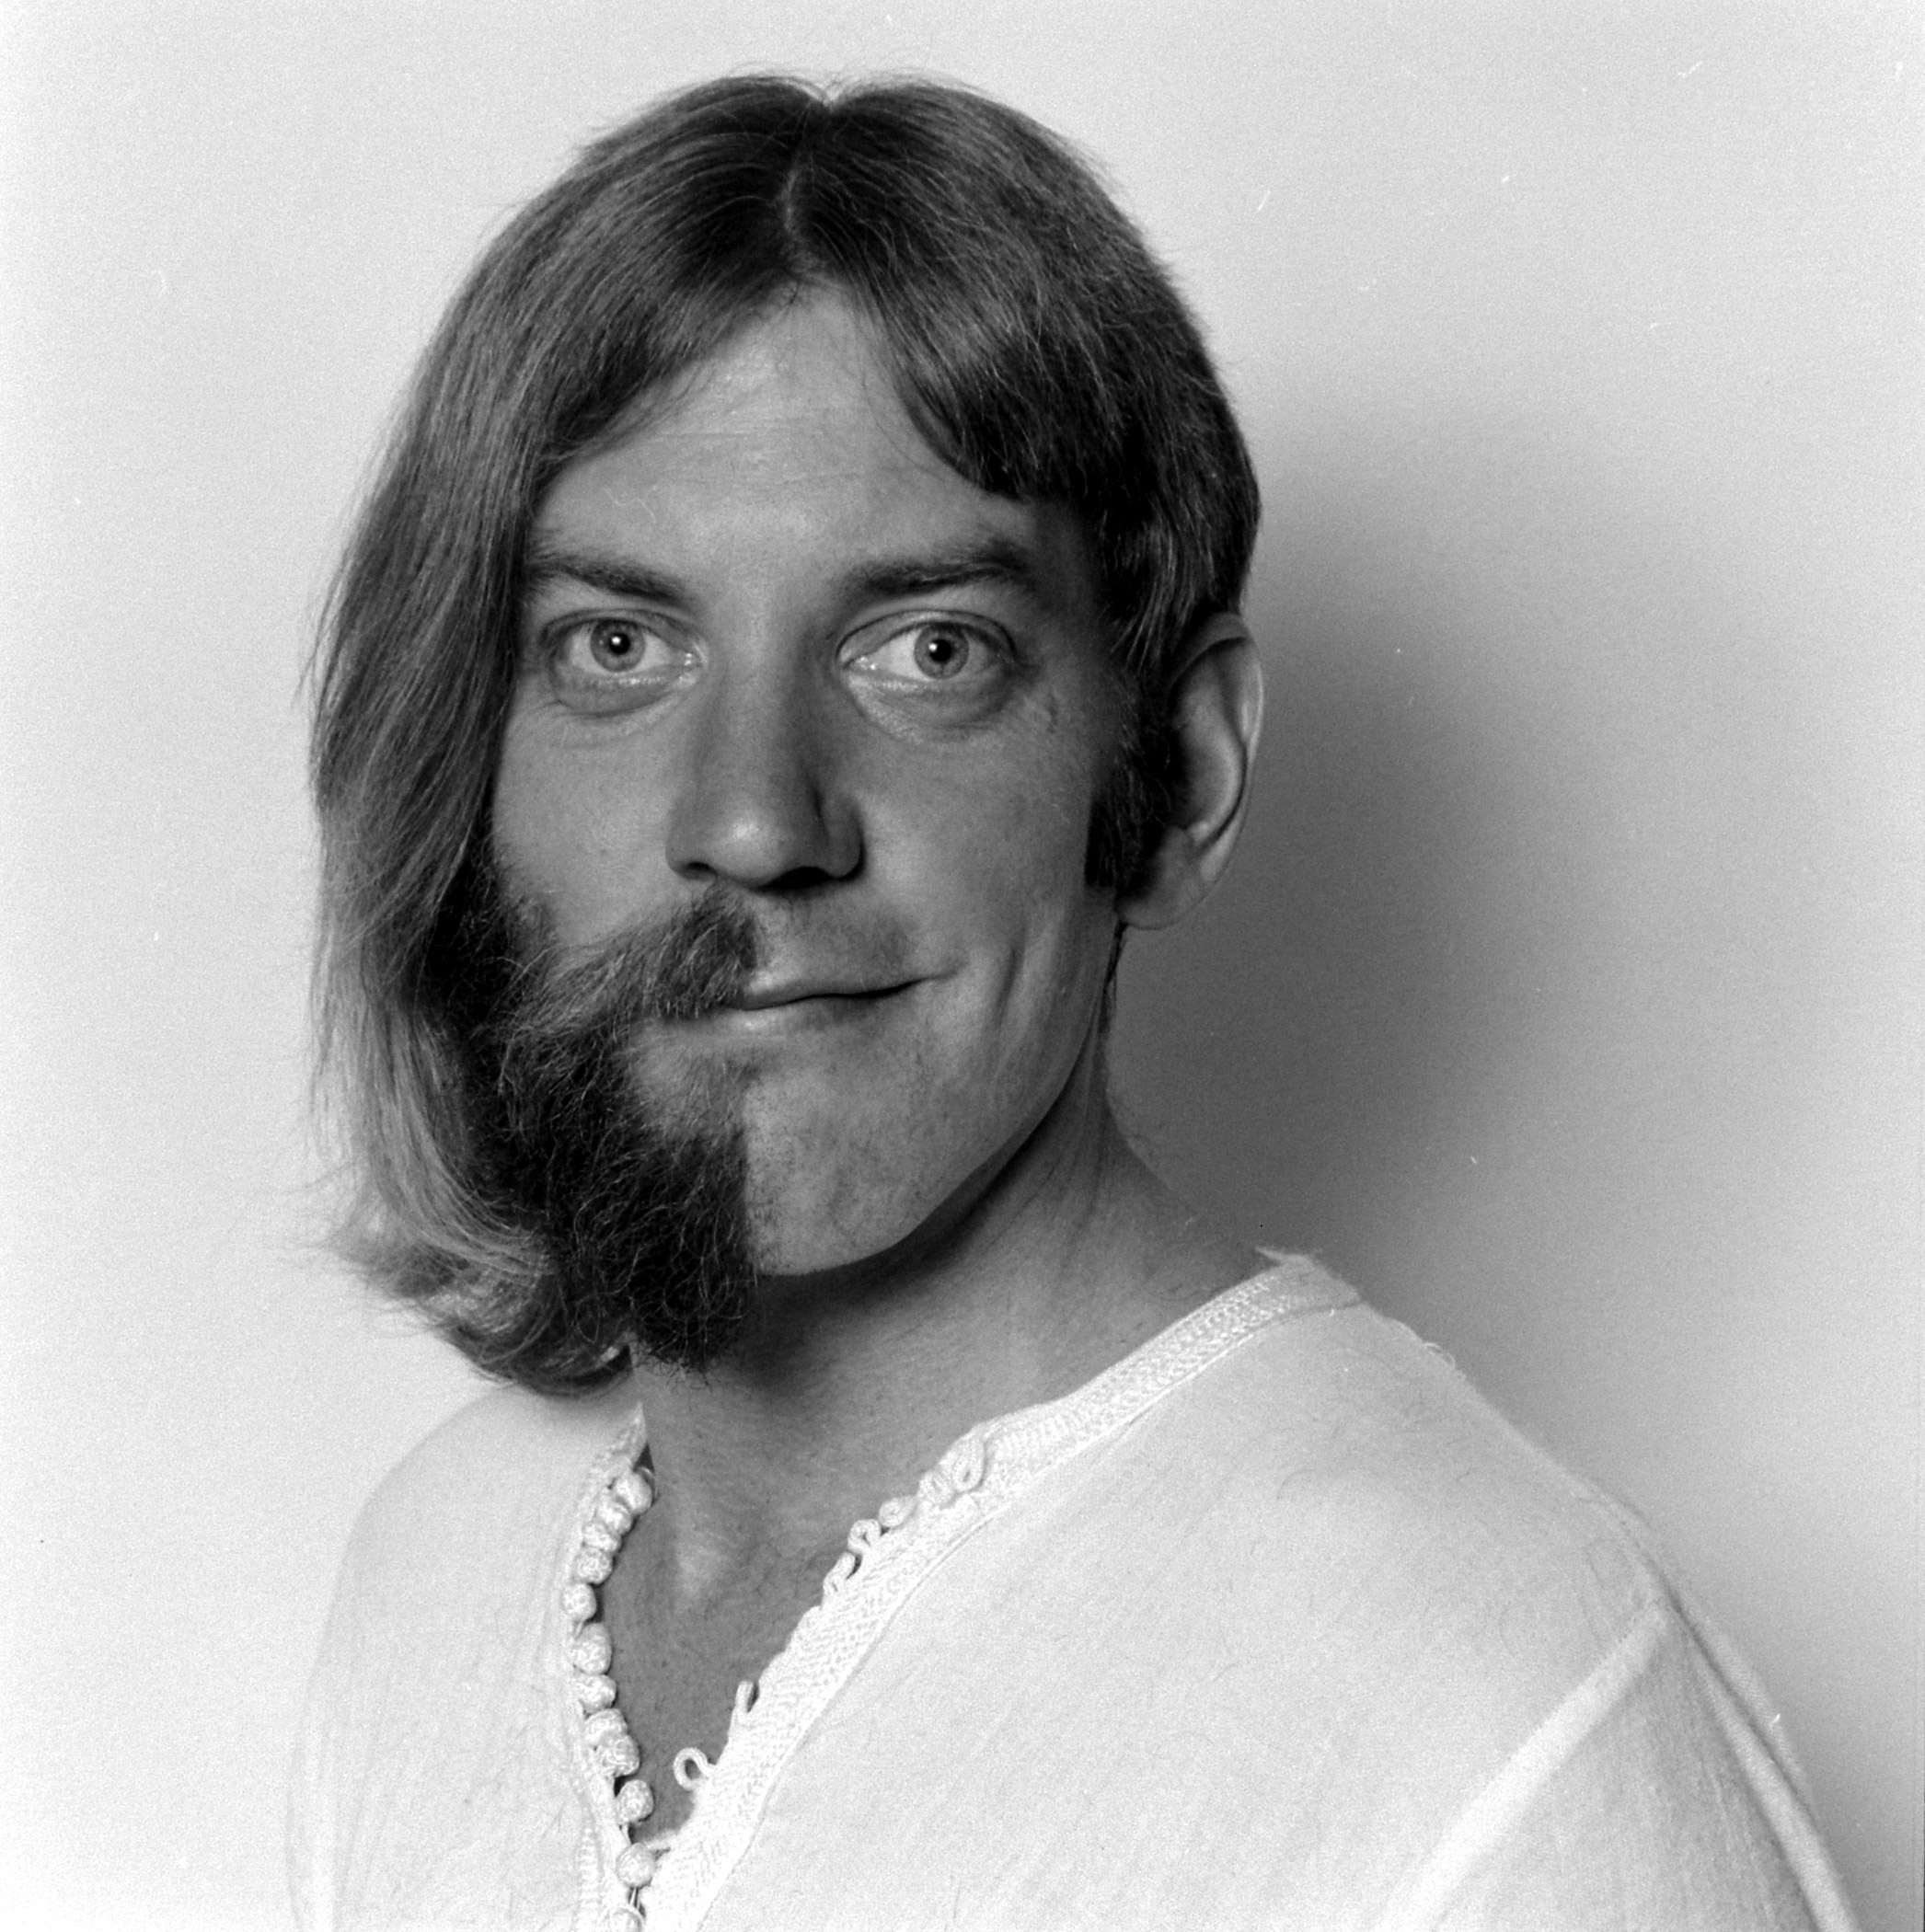 If you're looking to go from bearded to clean-shaven, go halfway for Halloween, as Donald Sutherland did in this classic 1970 portrait.